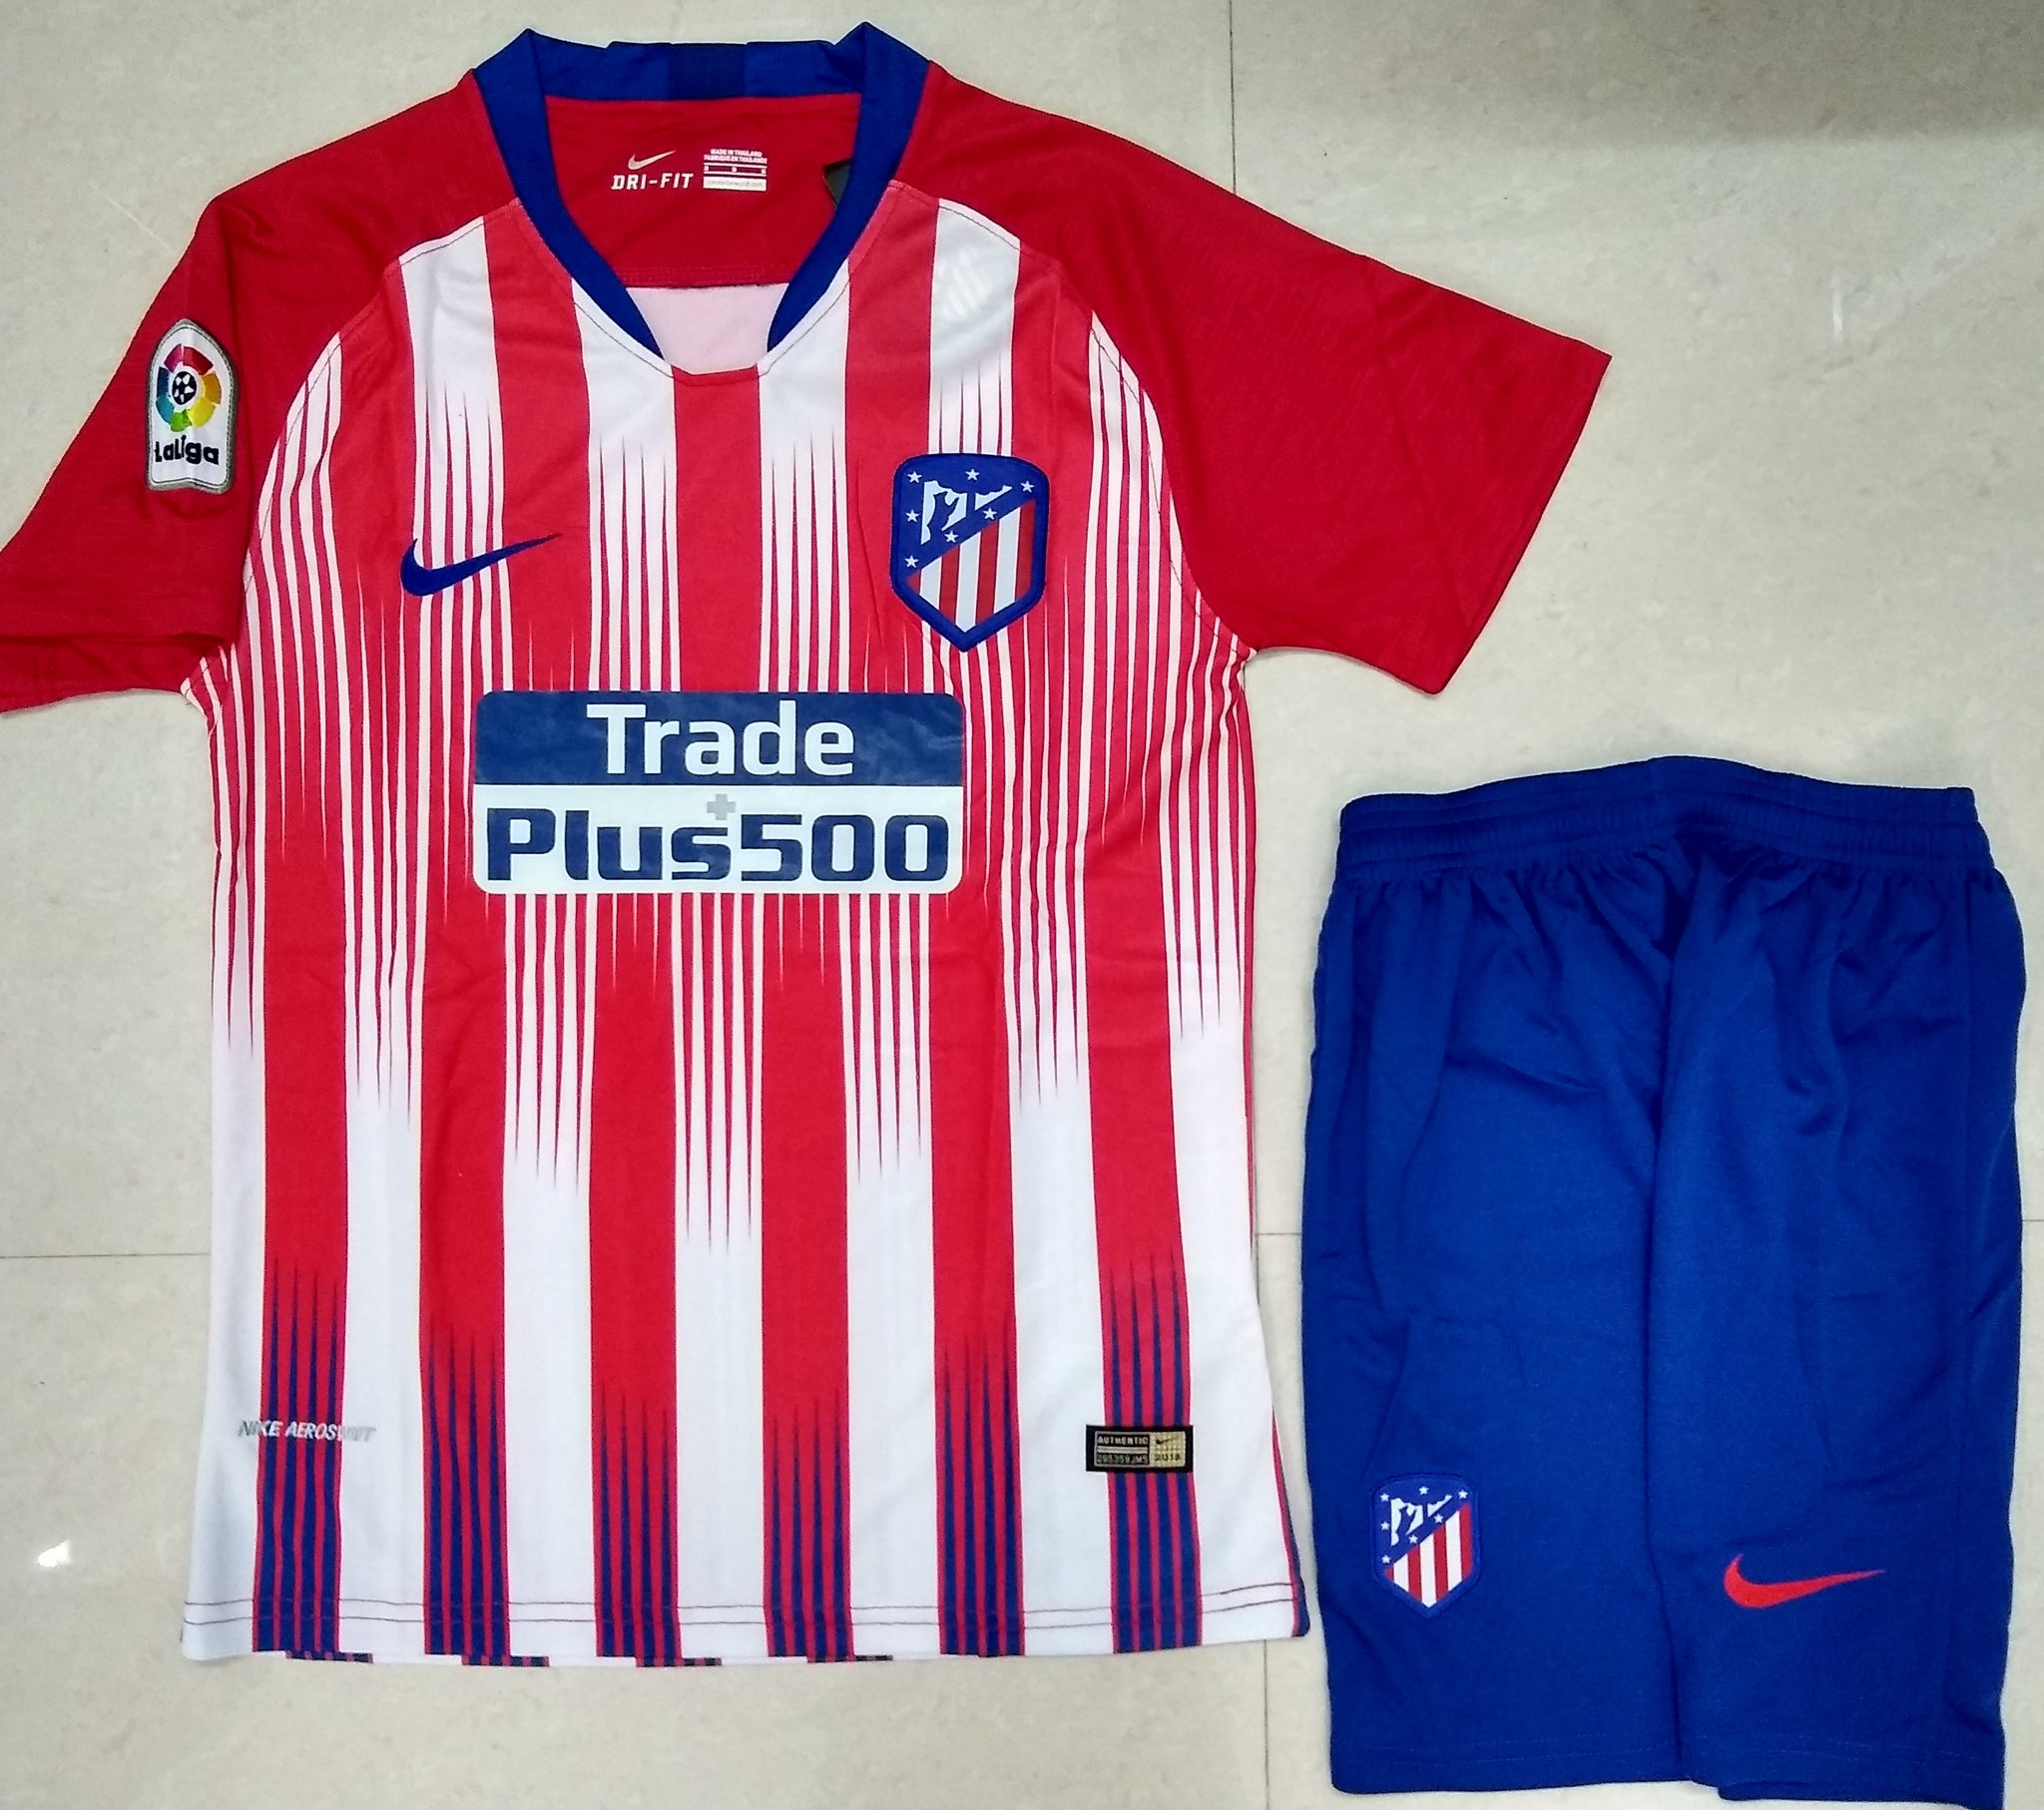 huge selection of e8986 f4210 Original Atletico Madrid Premium Home Jersey & Shorts [Optional] 2018-19